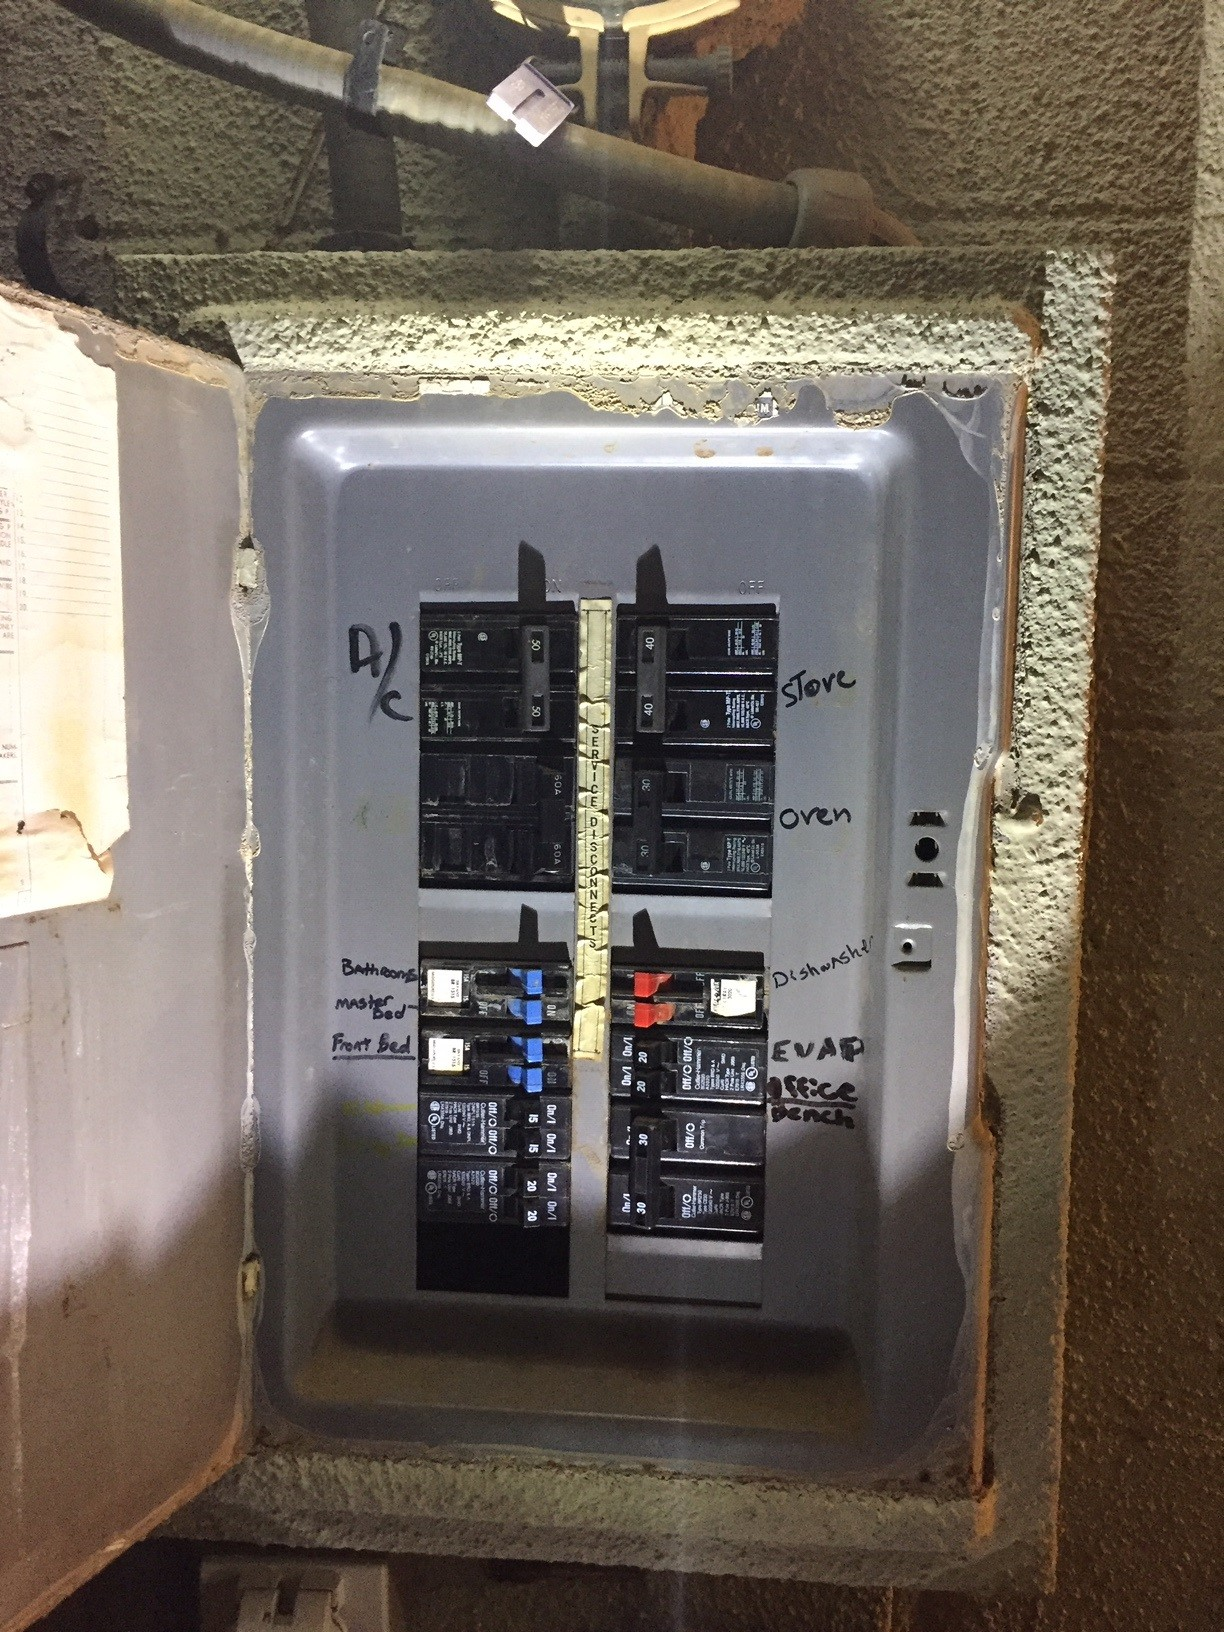 30 Amp Sub Panel Wiring Diagram Can I Add A Subpanel Home Improvement Stack Exchange Of 30 Amp Sub Panel Wiring Diagram